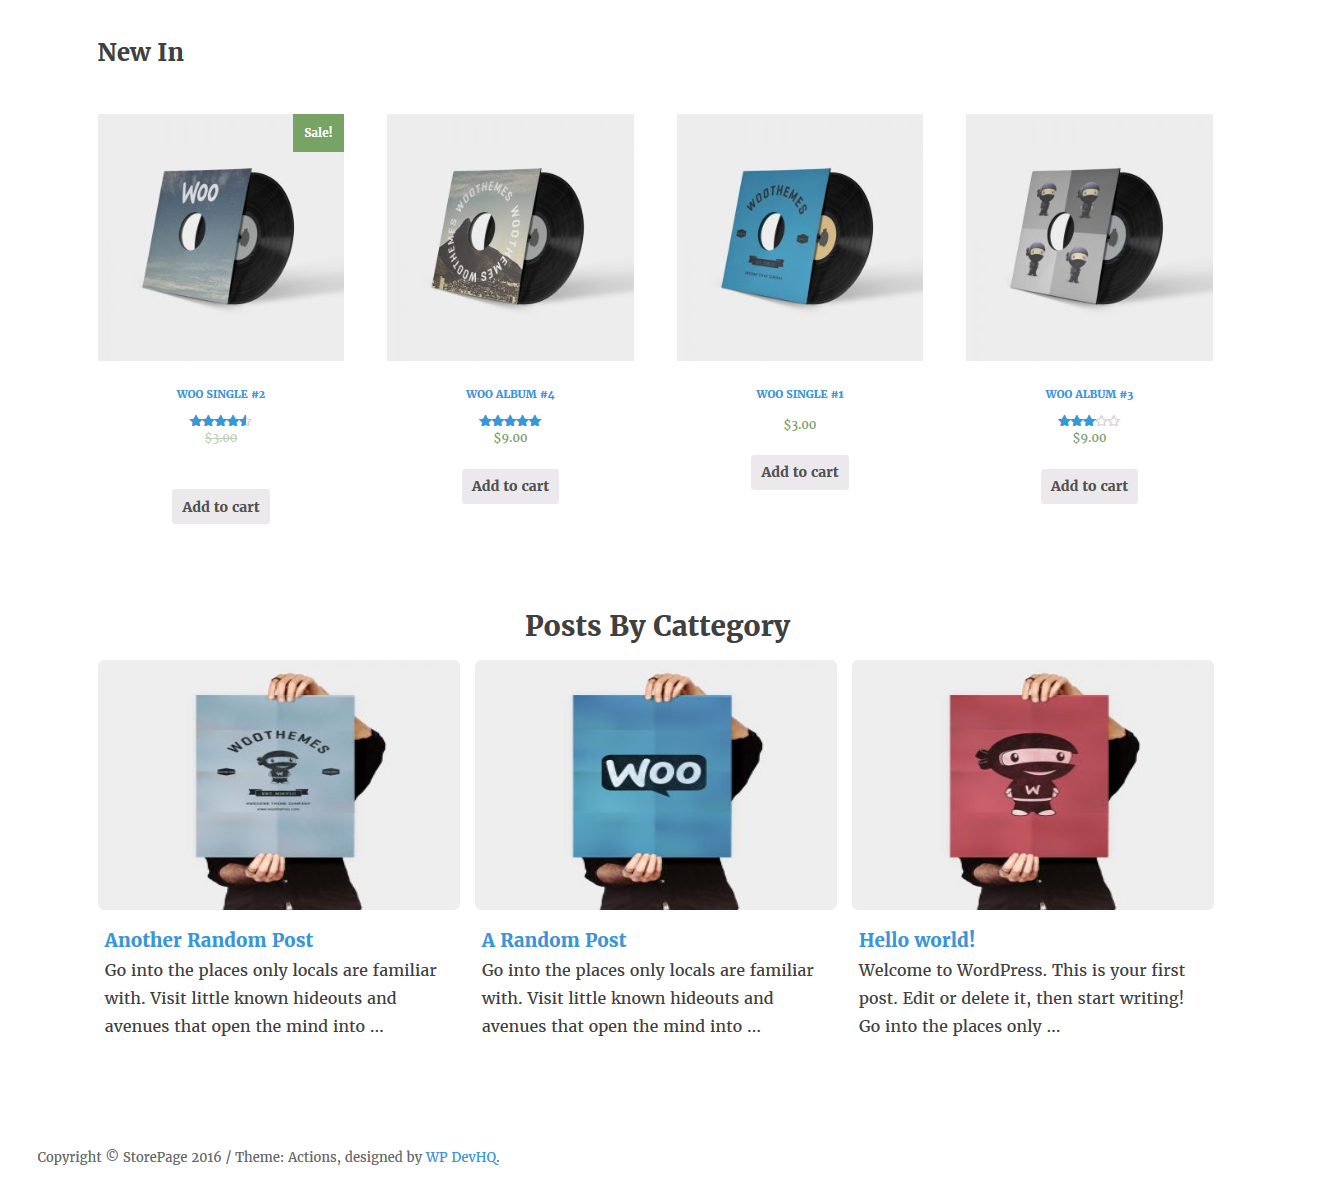 <p>Frontend View Products And Posts</p>